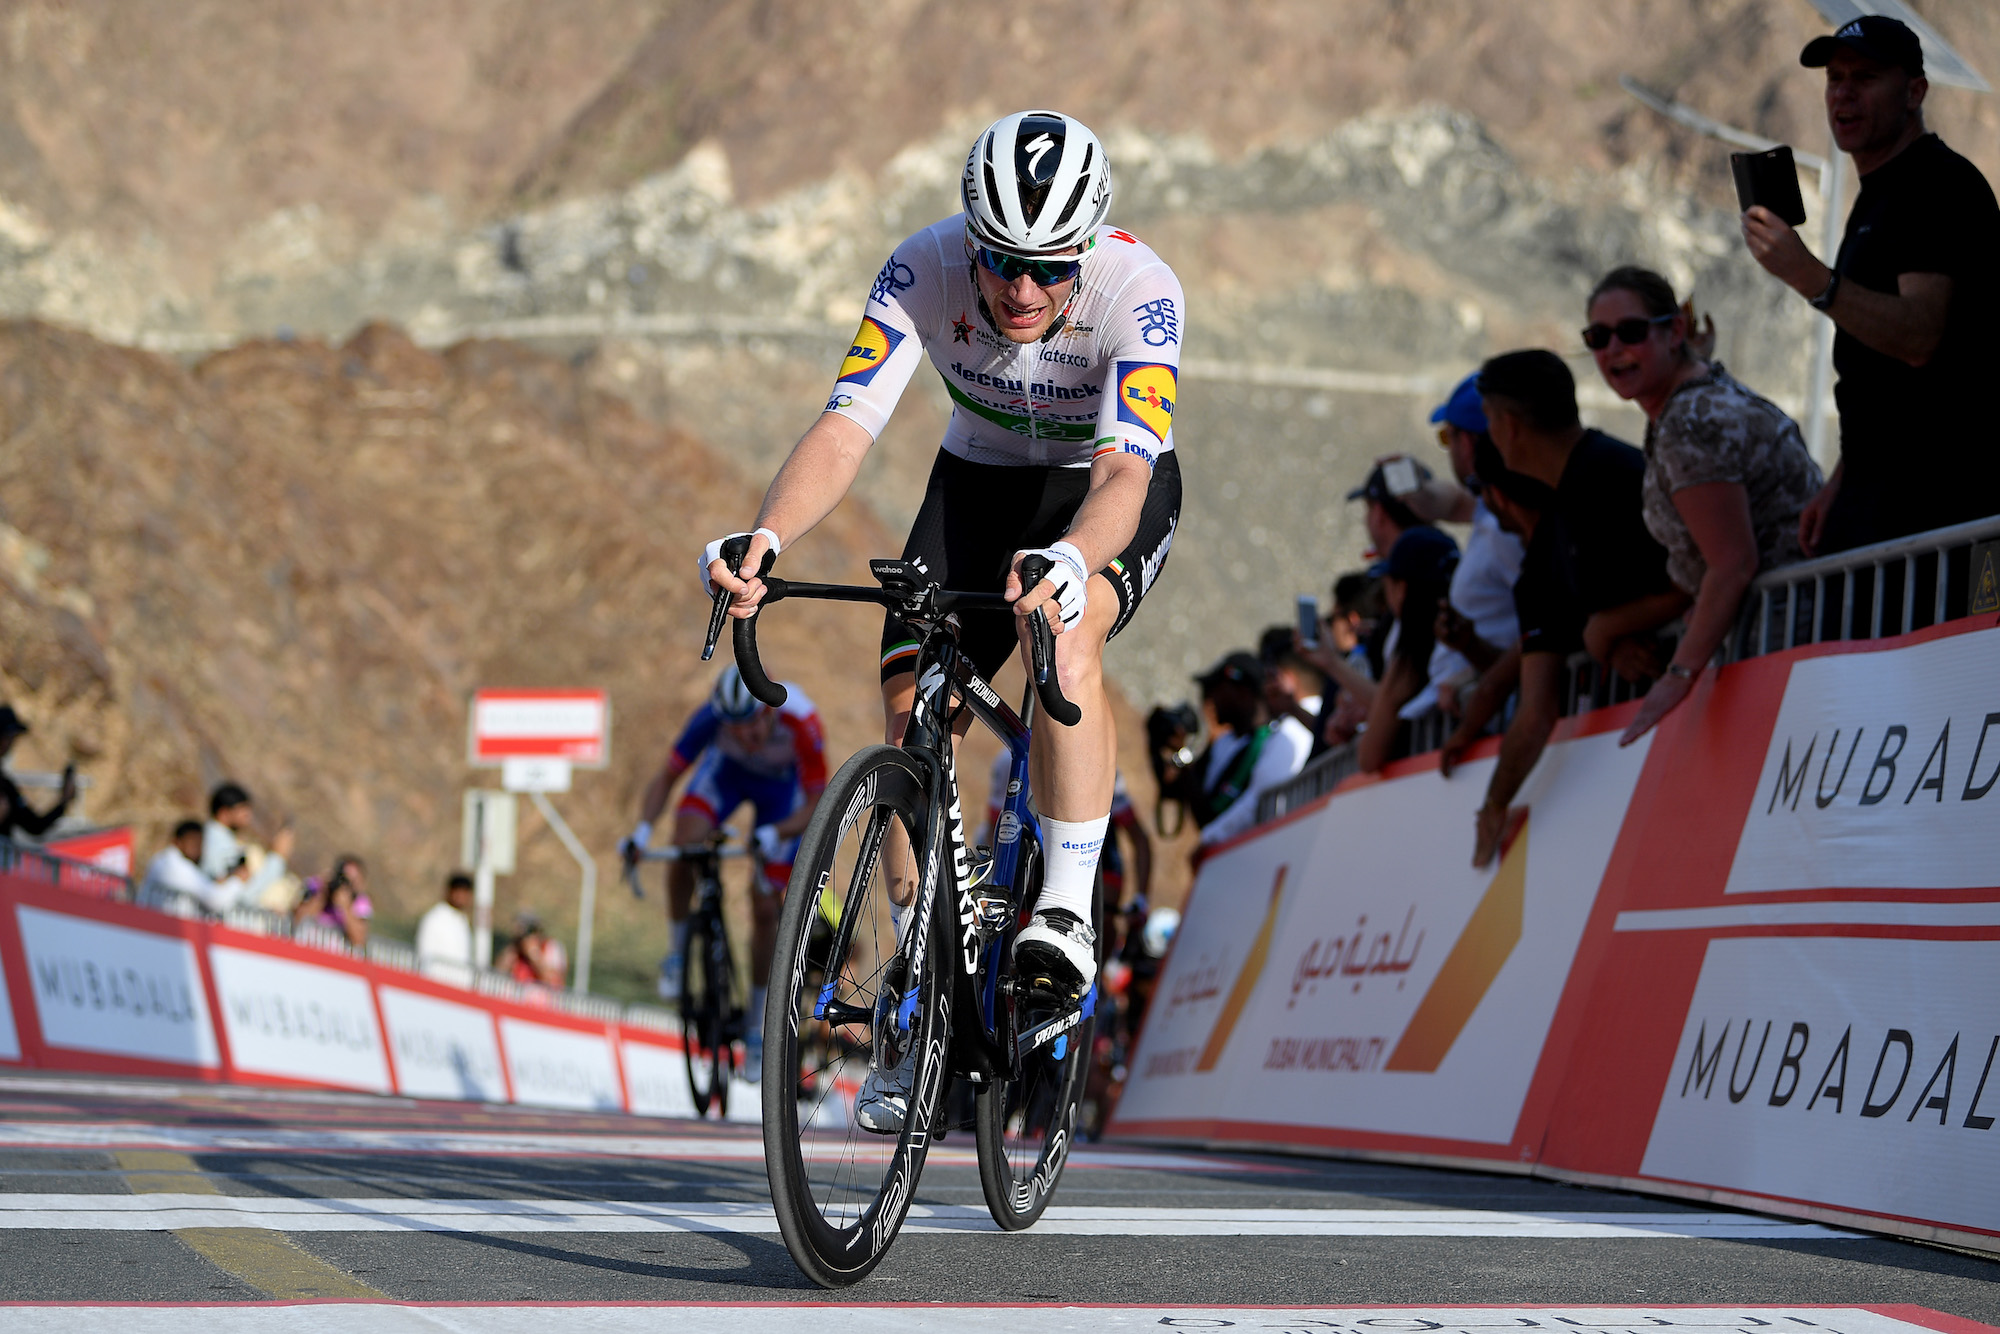 Power data reveals huge numbers put out by sprinters and climbers on Hatta Dam stage of UAE Tour - Cycling Weekly